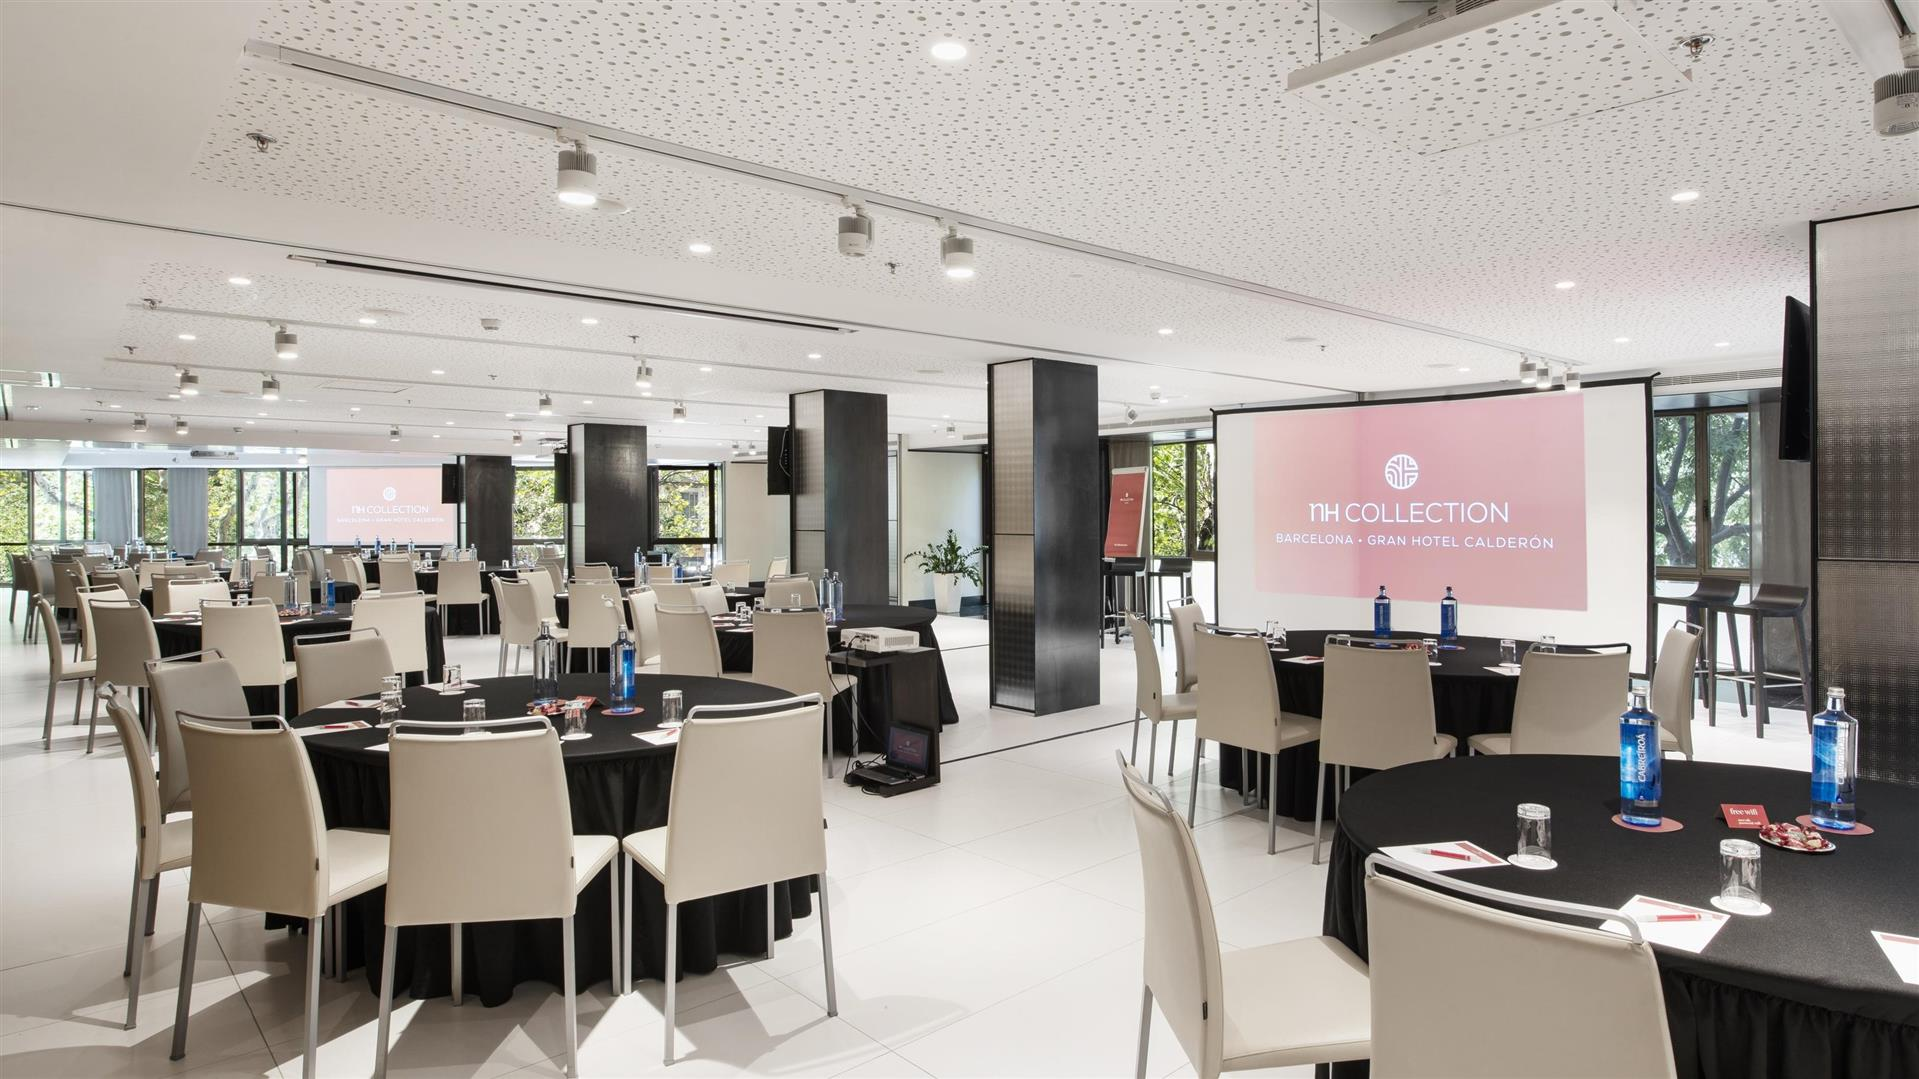 Meetings And Events At Nh Collection Barcelona Gran Hotel